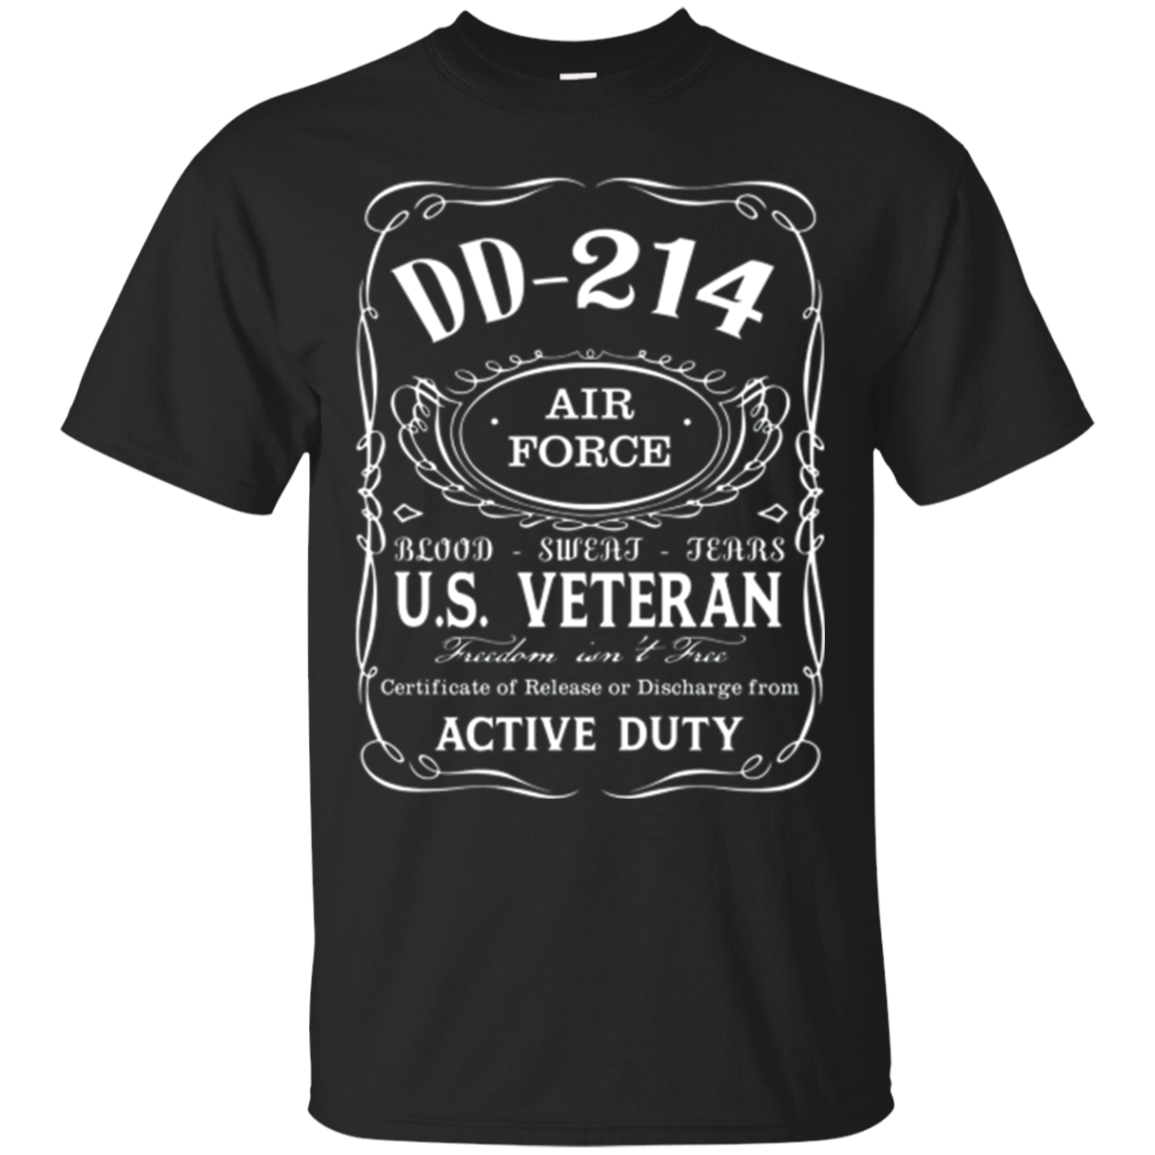 Air Force DD-214 Alumni T-Shirt